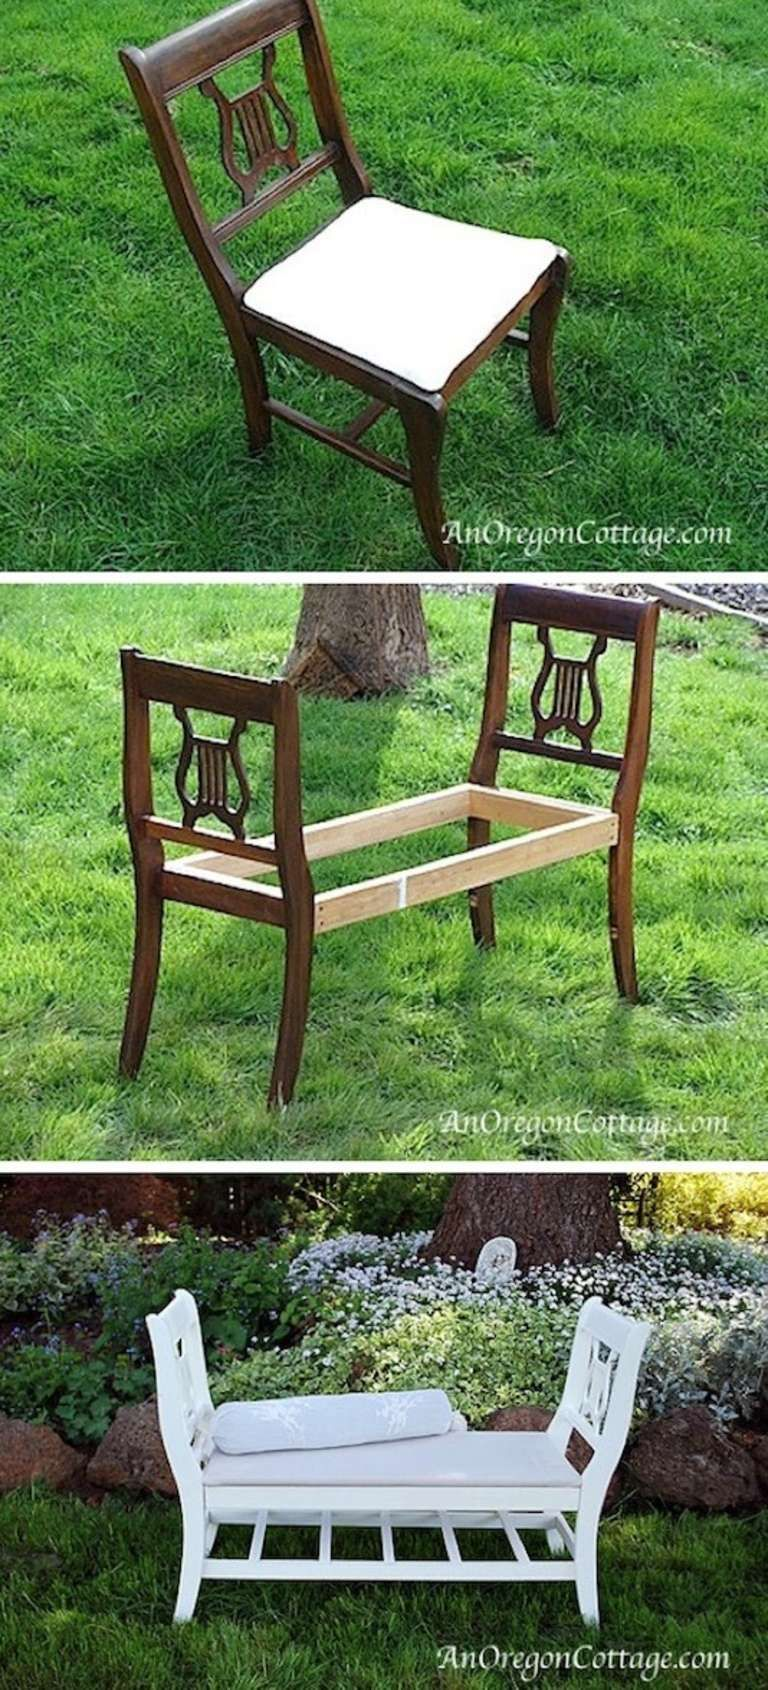 14 Clever Diy Hacks That Will Make You Fall In Love With Your Furniture Again Diy Furniture Chair Diy Furniture Hacks Unusual Furniture